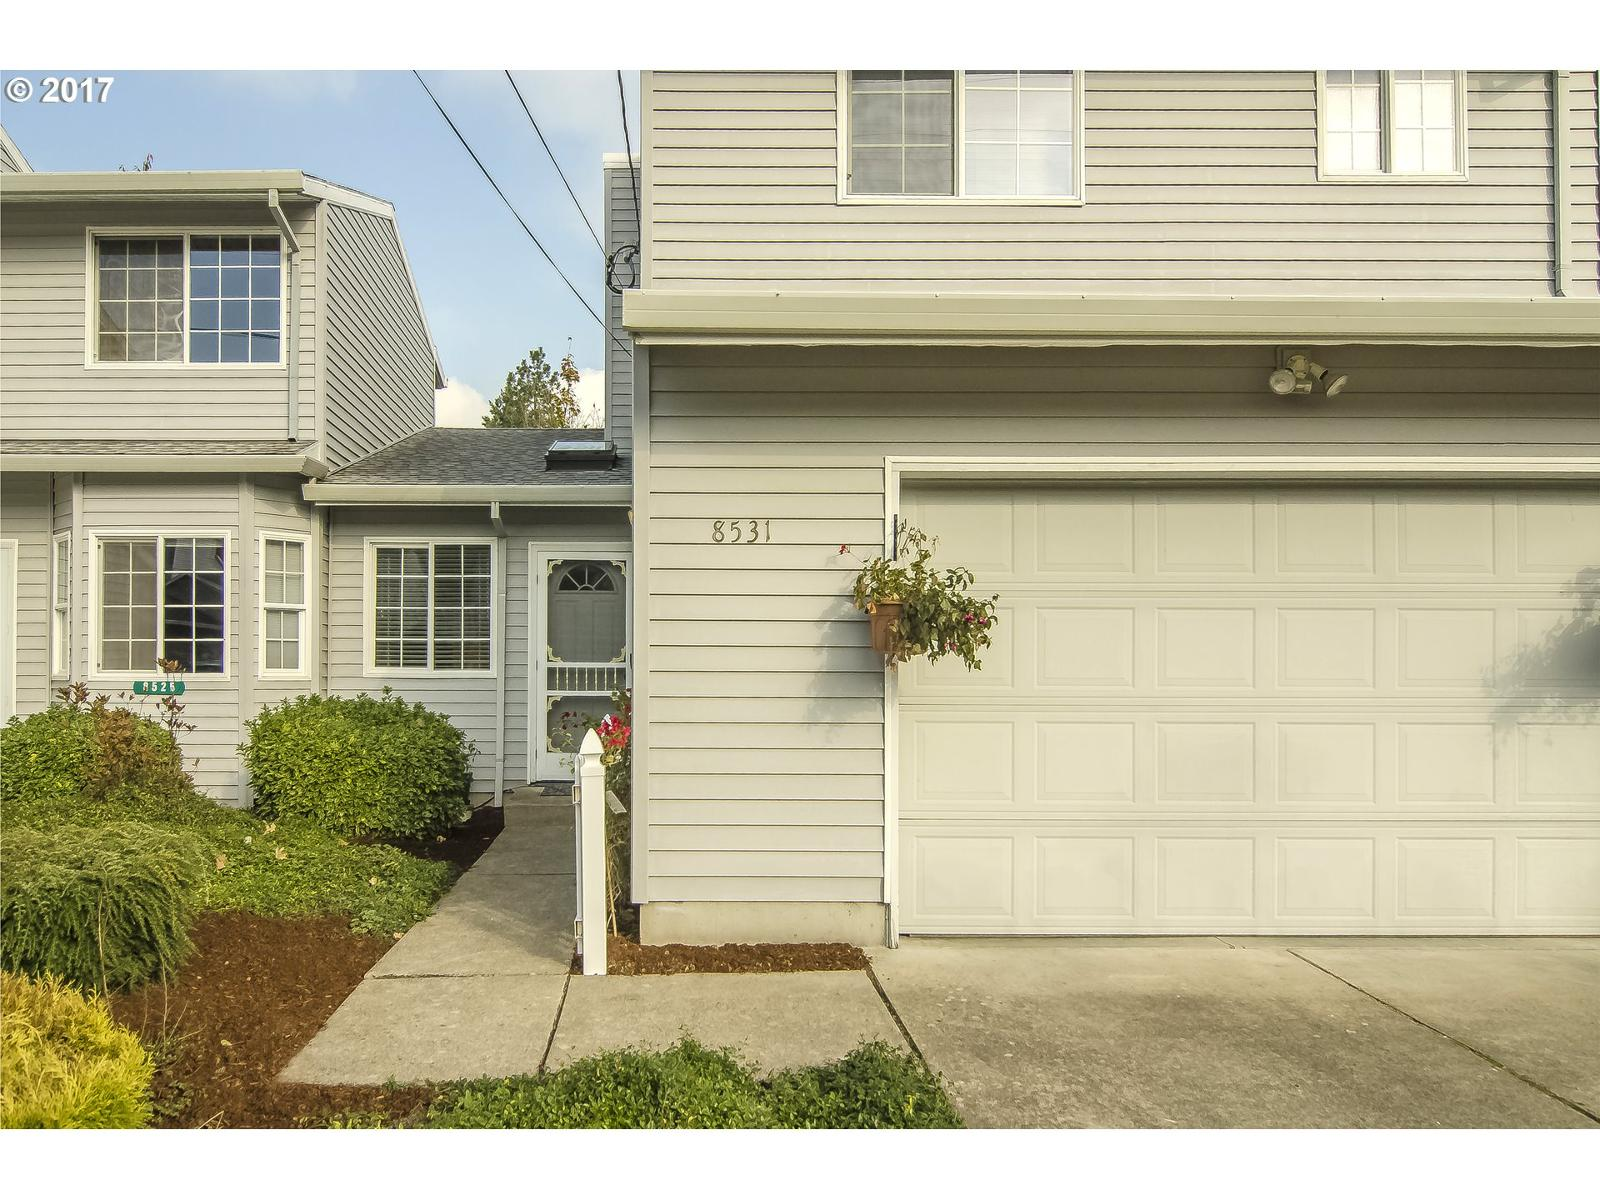 8531 Ne Broadway Portland Or Mls 17609431 Better Homes And Gardens Real Estate